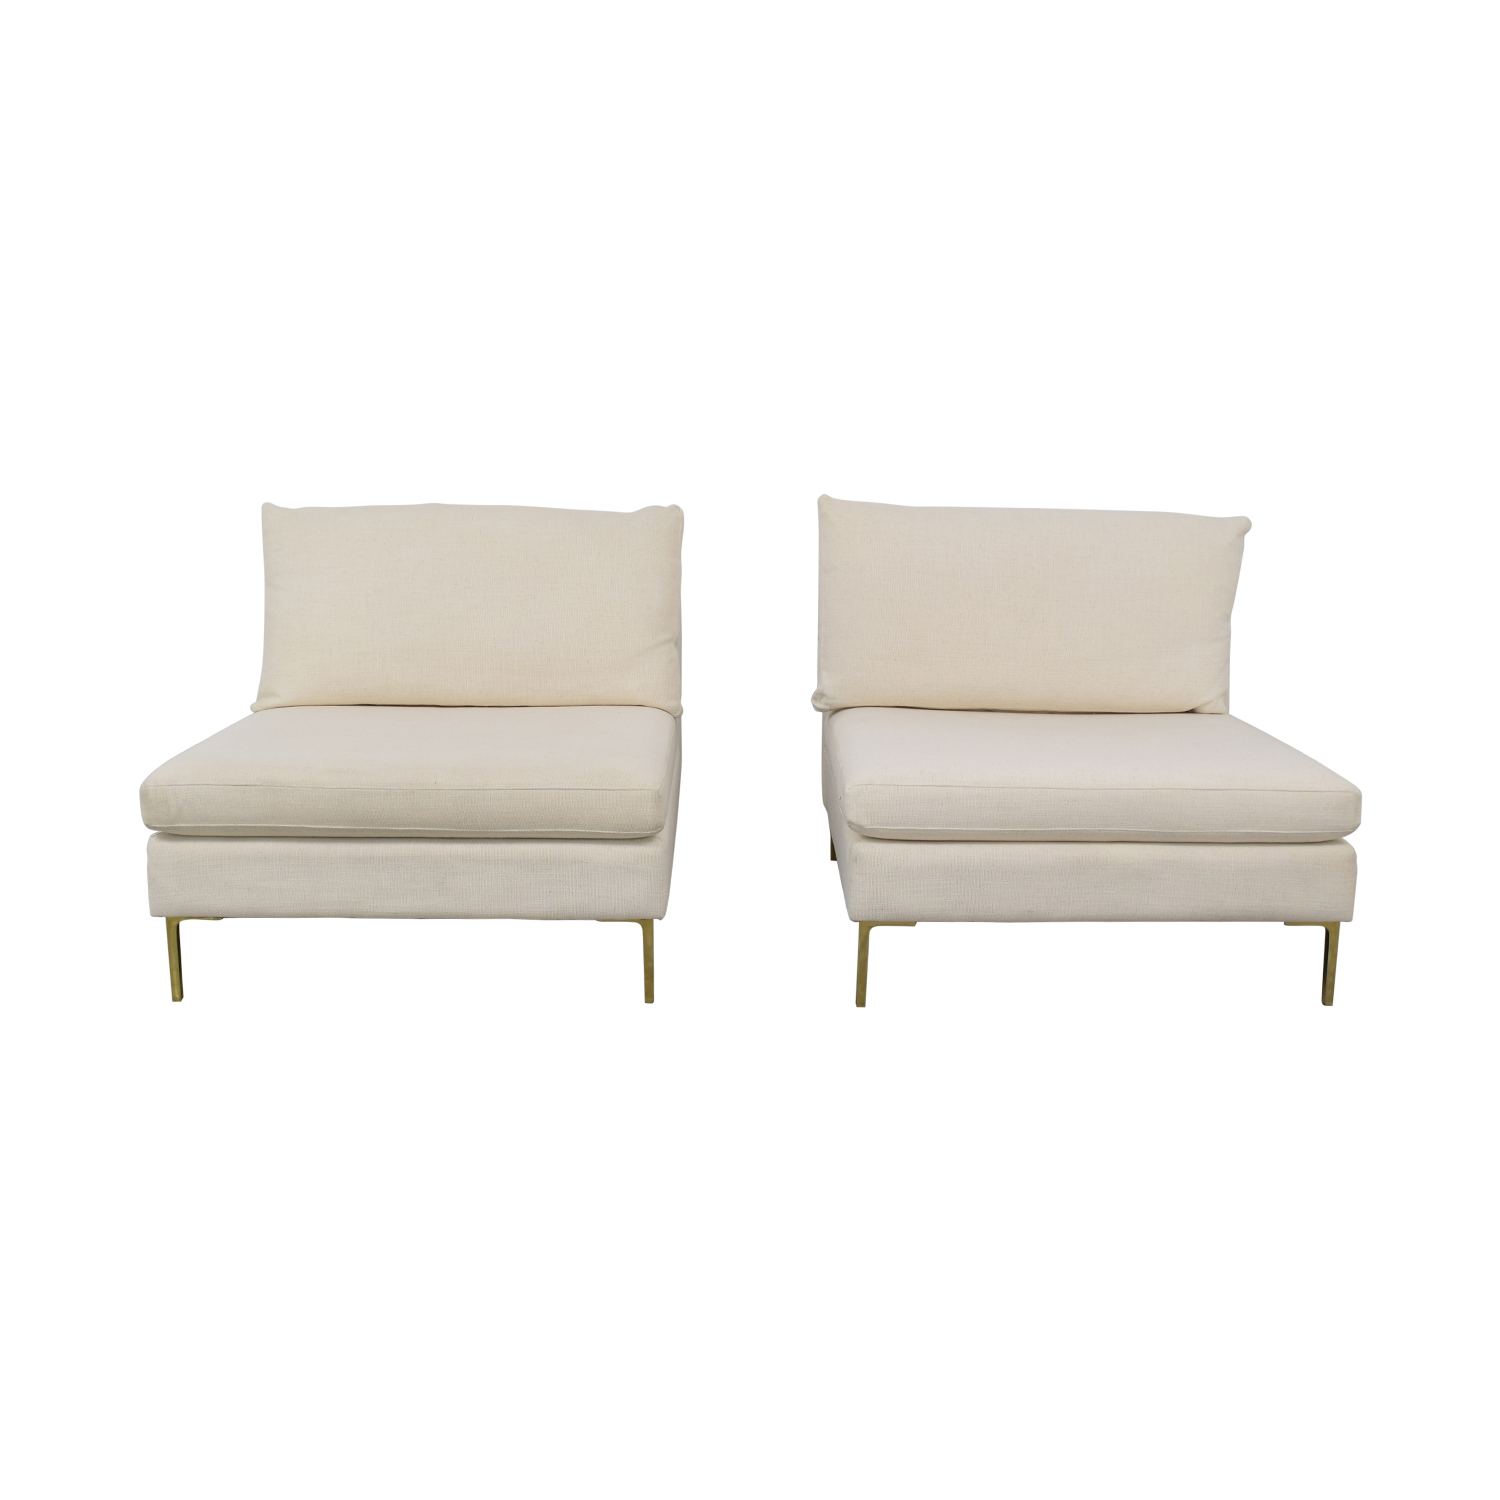 Anthropologie Anthropologie Armless Sofa used